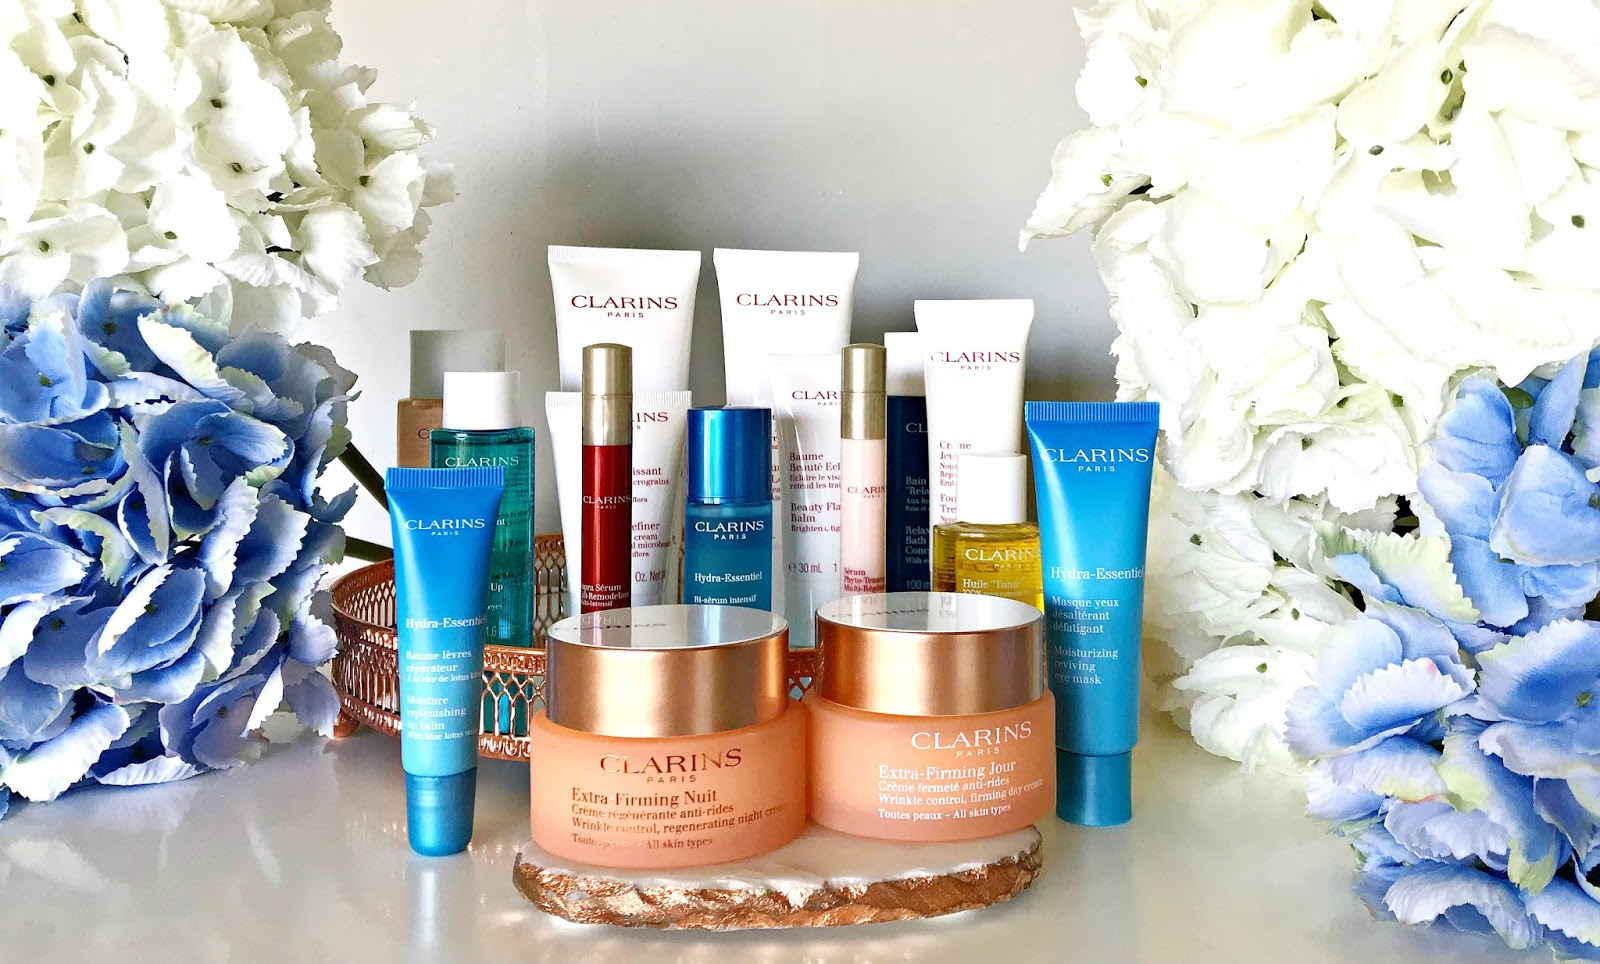 House Of Fraser Clarins Gift With Purchase, Clarins Extra-Firming Day Cream Review, Clarins Extra-Firming Night Cream Review